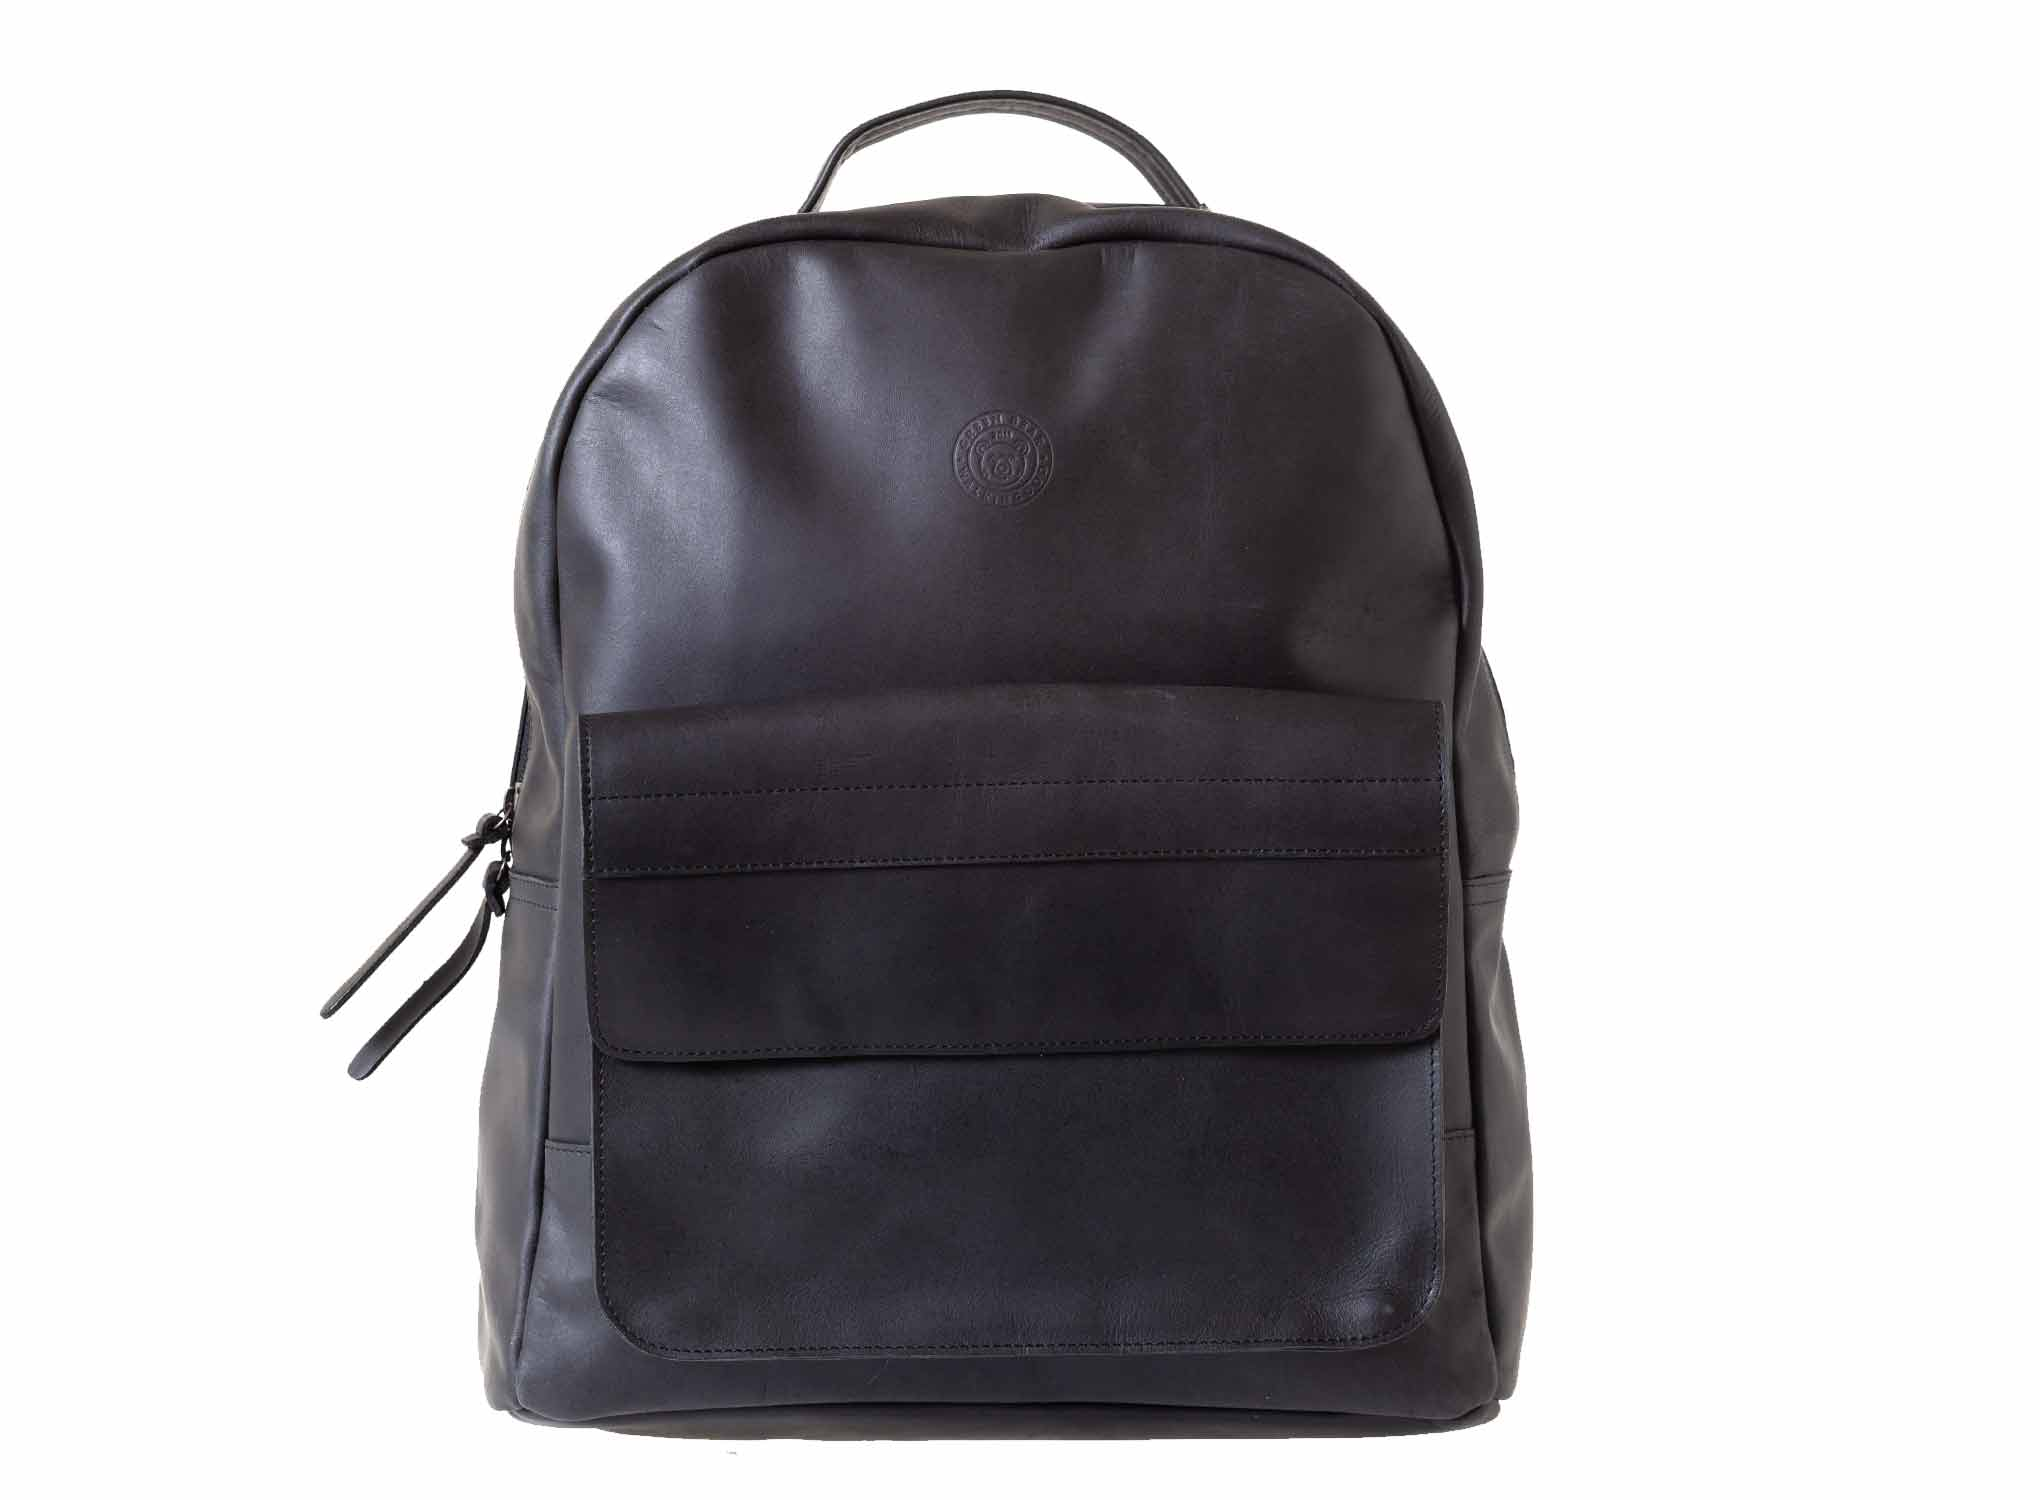 Bolso Formal para hombre Green Bear Negro - Green Bear Shoes